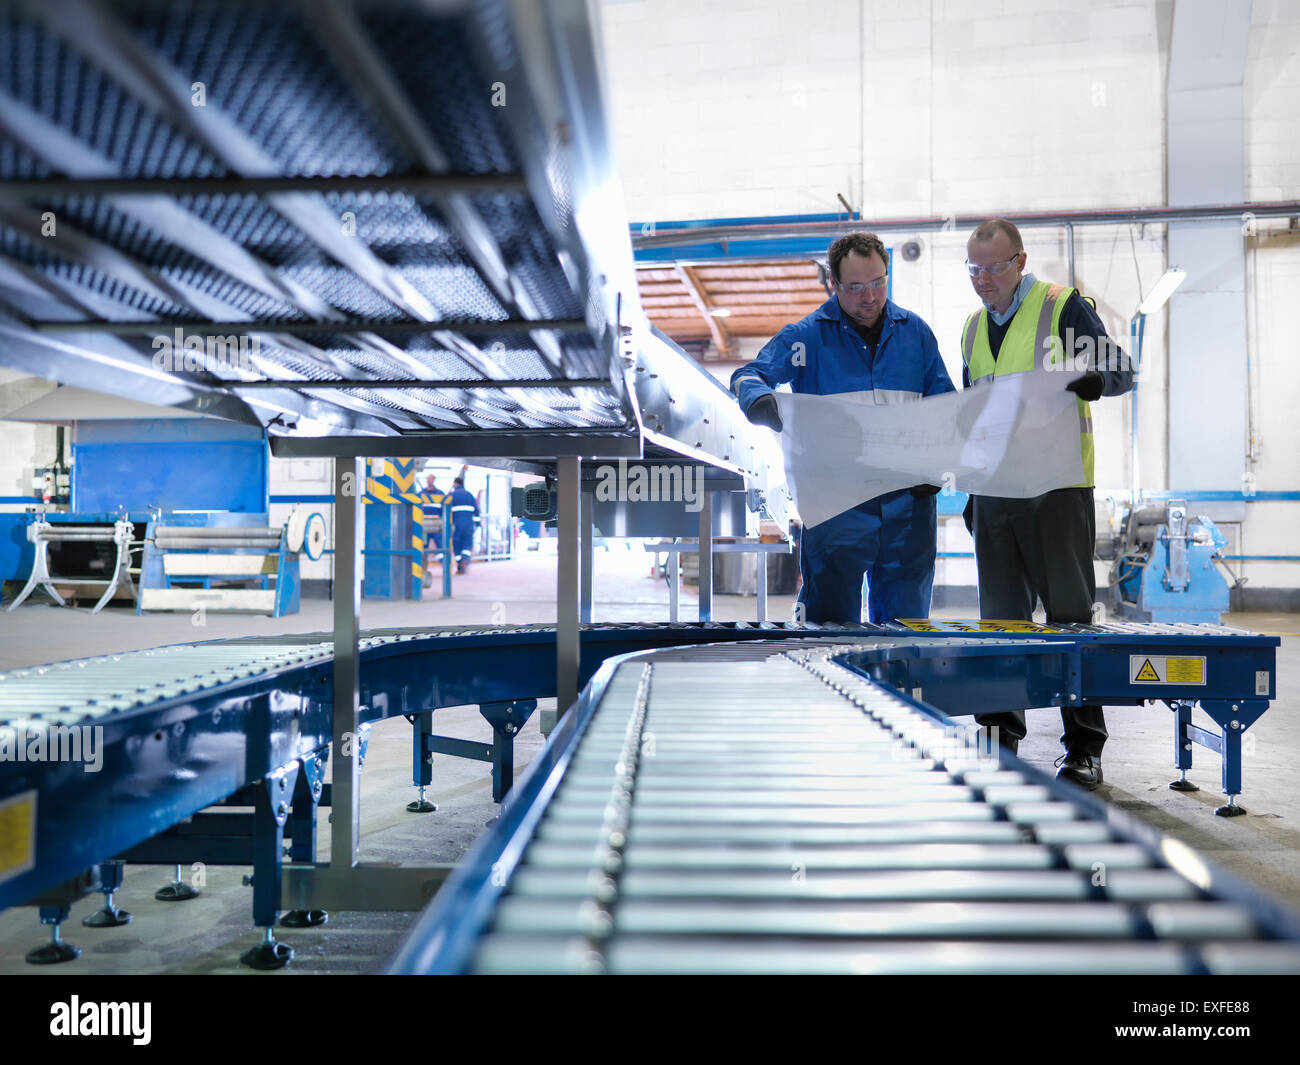 Engineers inspecting new conveyor in engineering factory - Stock Image